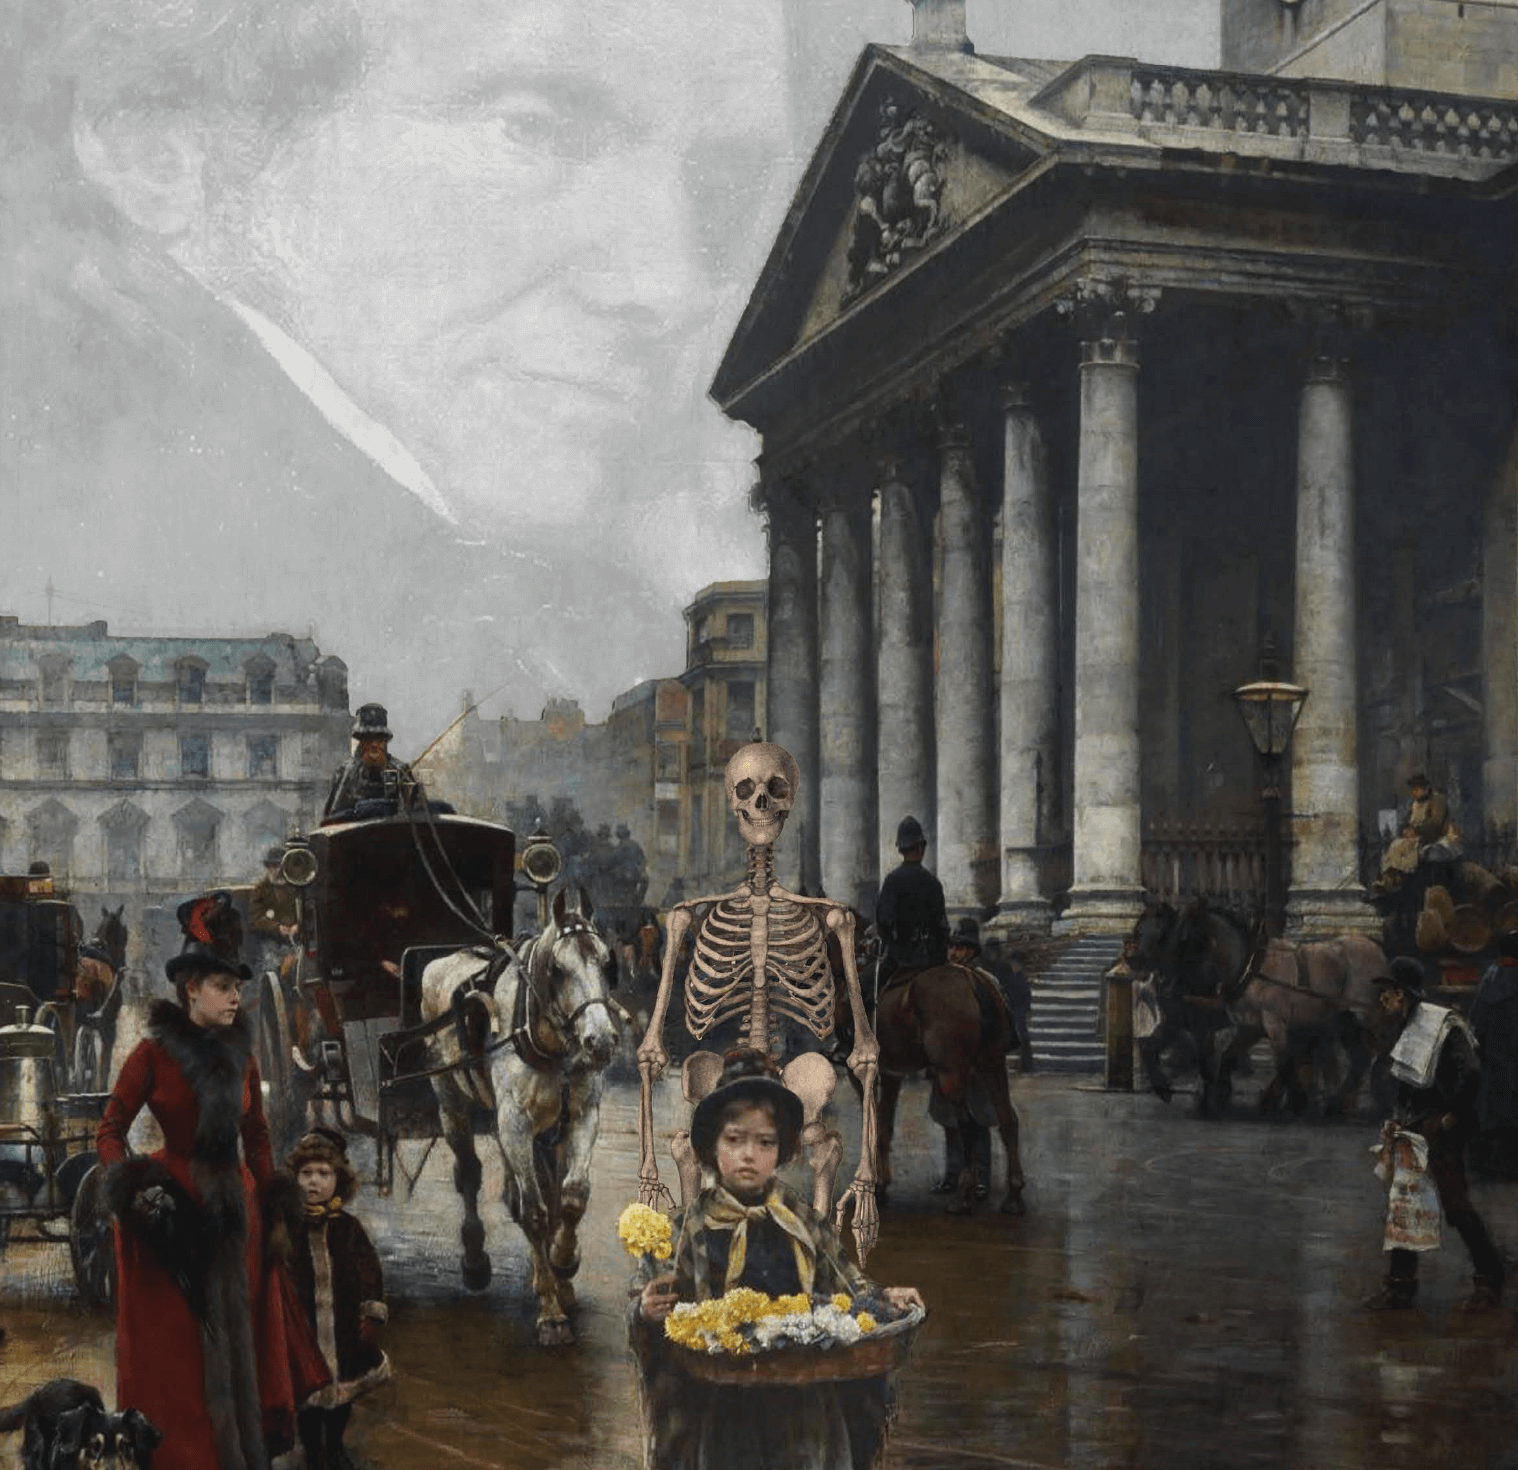 Death on the Streets - The War Against an Invisible Enemy: COVID-19 and Biopolitics.